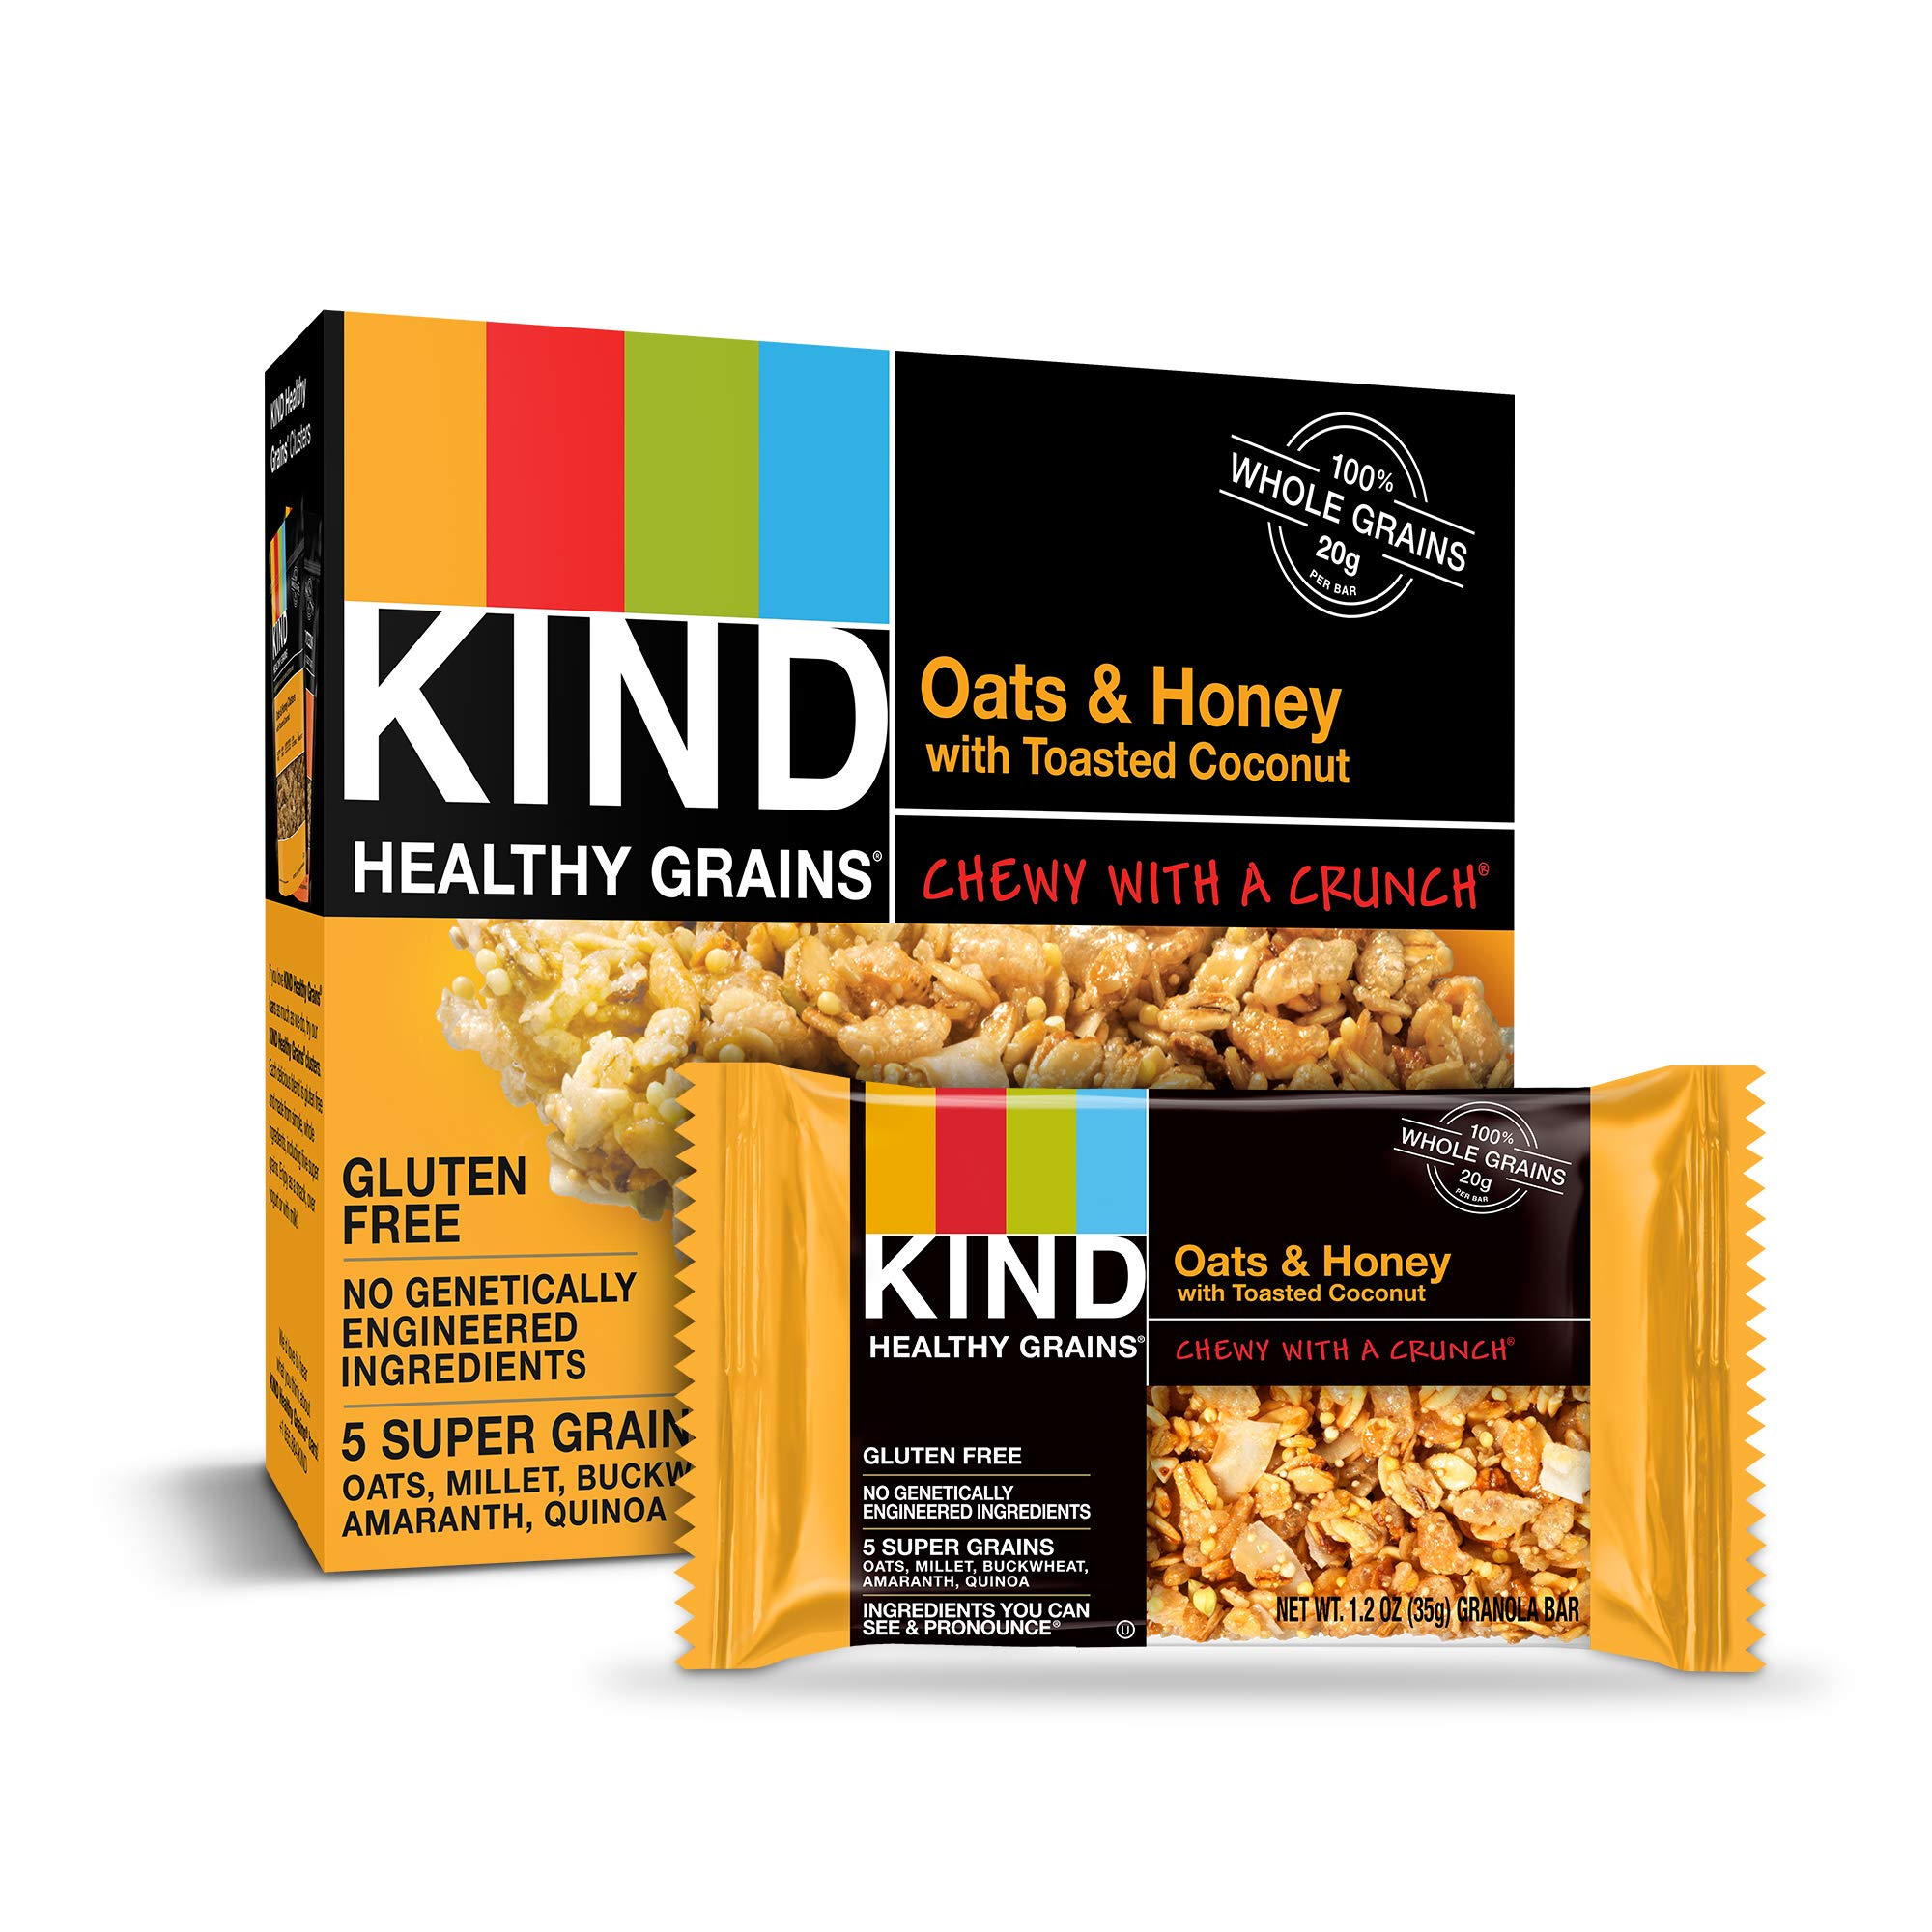 KIND Healthy Grains Granola Bars, Oats & Honey with Toasted Coconut, Gluten Free, 1.2 oz, 30 Count by KIND (Image #1)